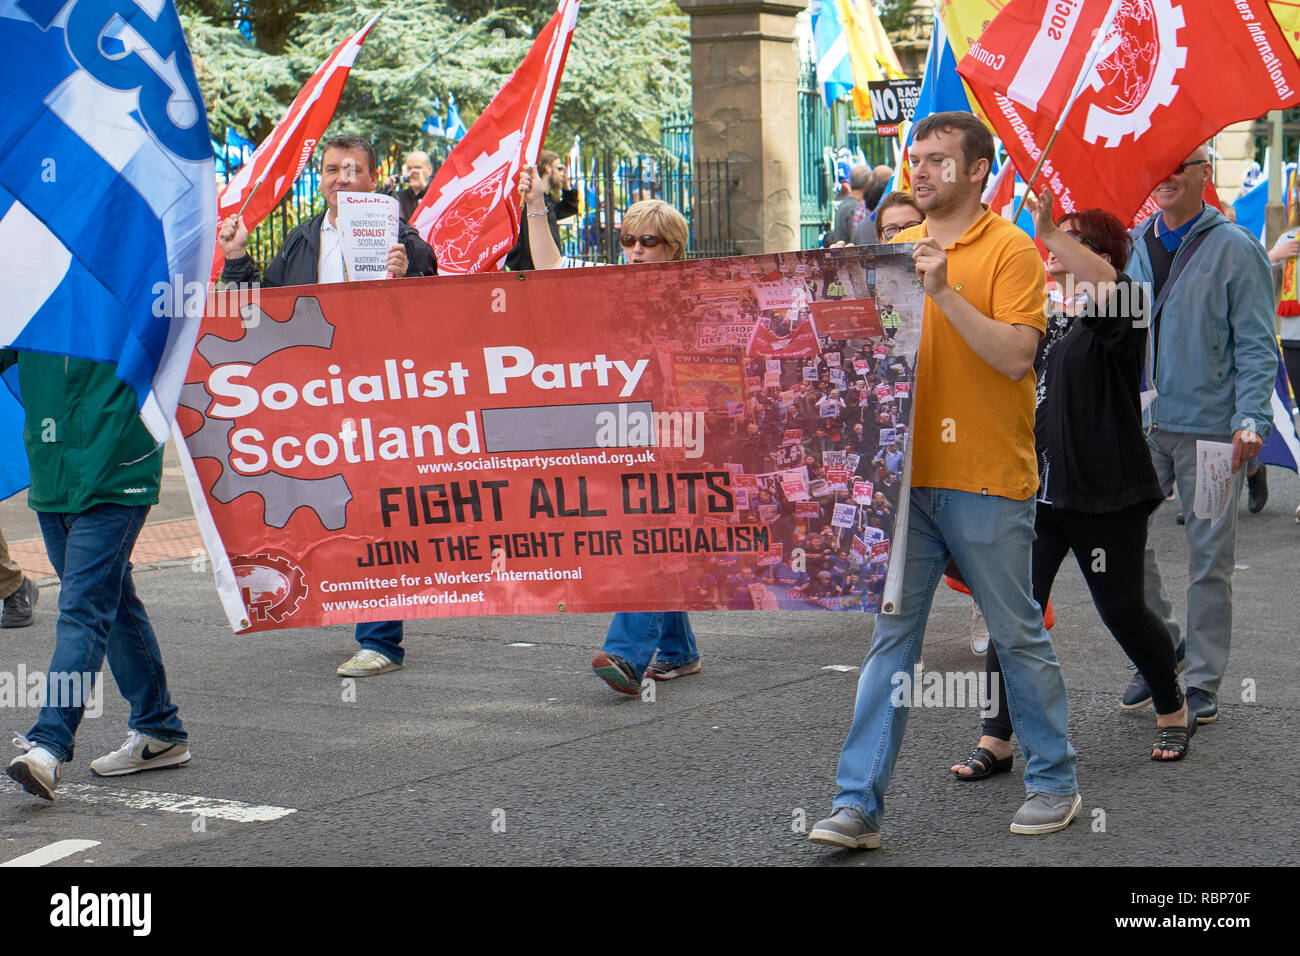 March for Scottish Independence, Dundee, Scotland. August 18th, 2018.  Socialist Party Scotland banner. - Stock Image